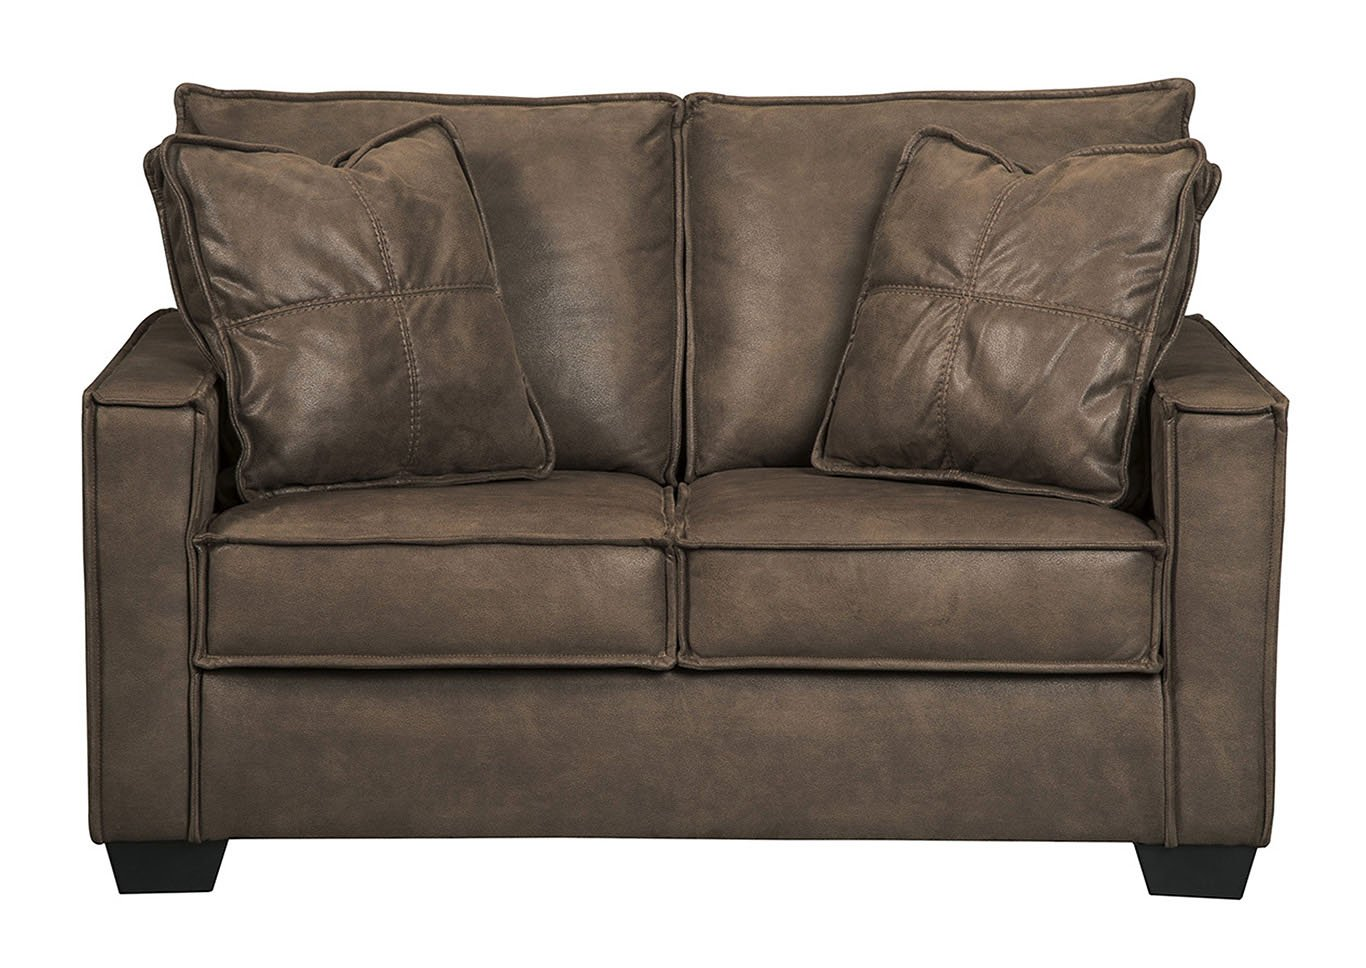 Ashley Furniture Signature Design - Terrington Contemporary Upholstered Loveseat - Harness 9290335